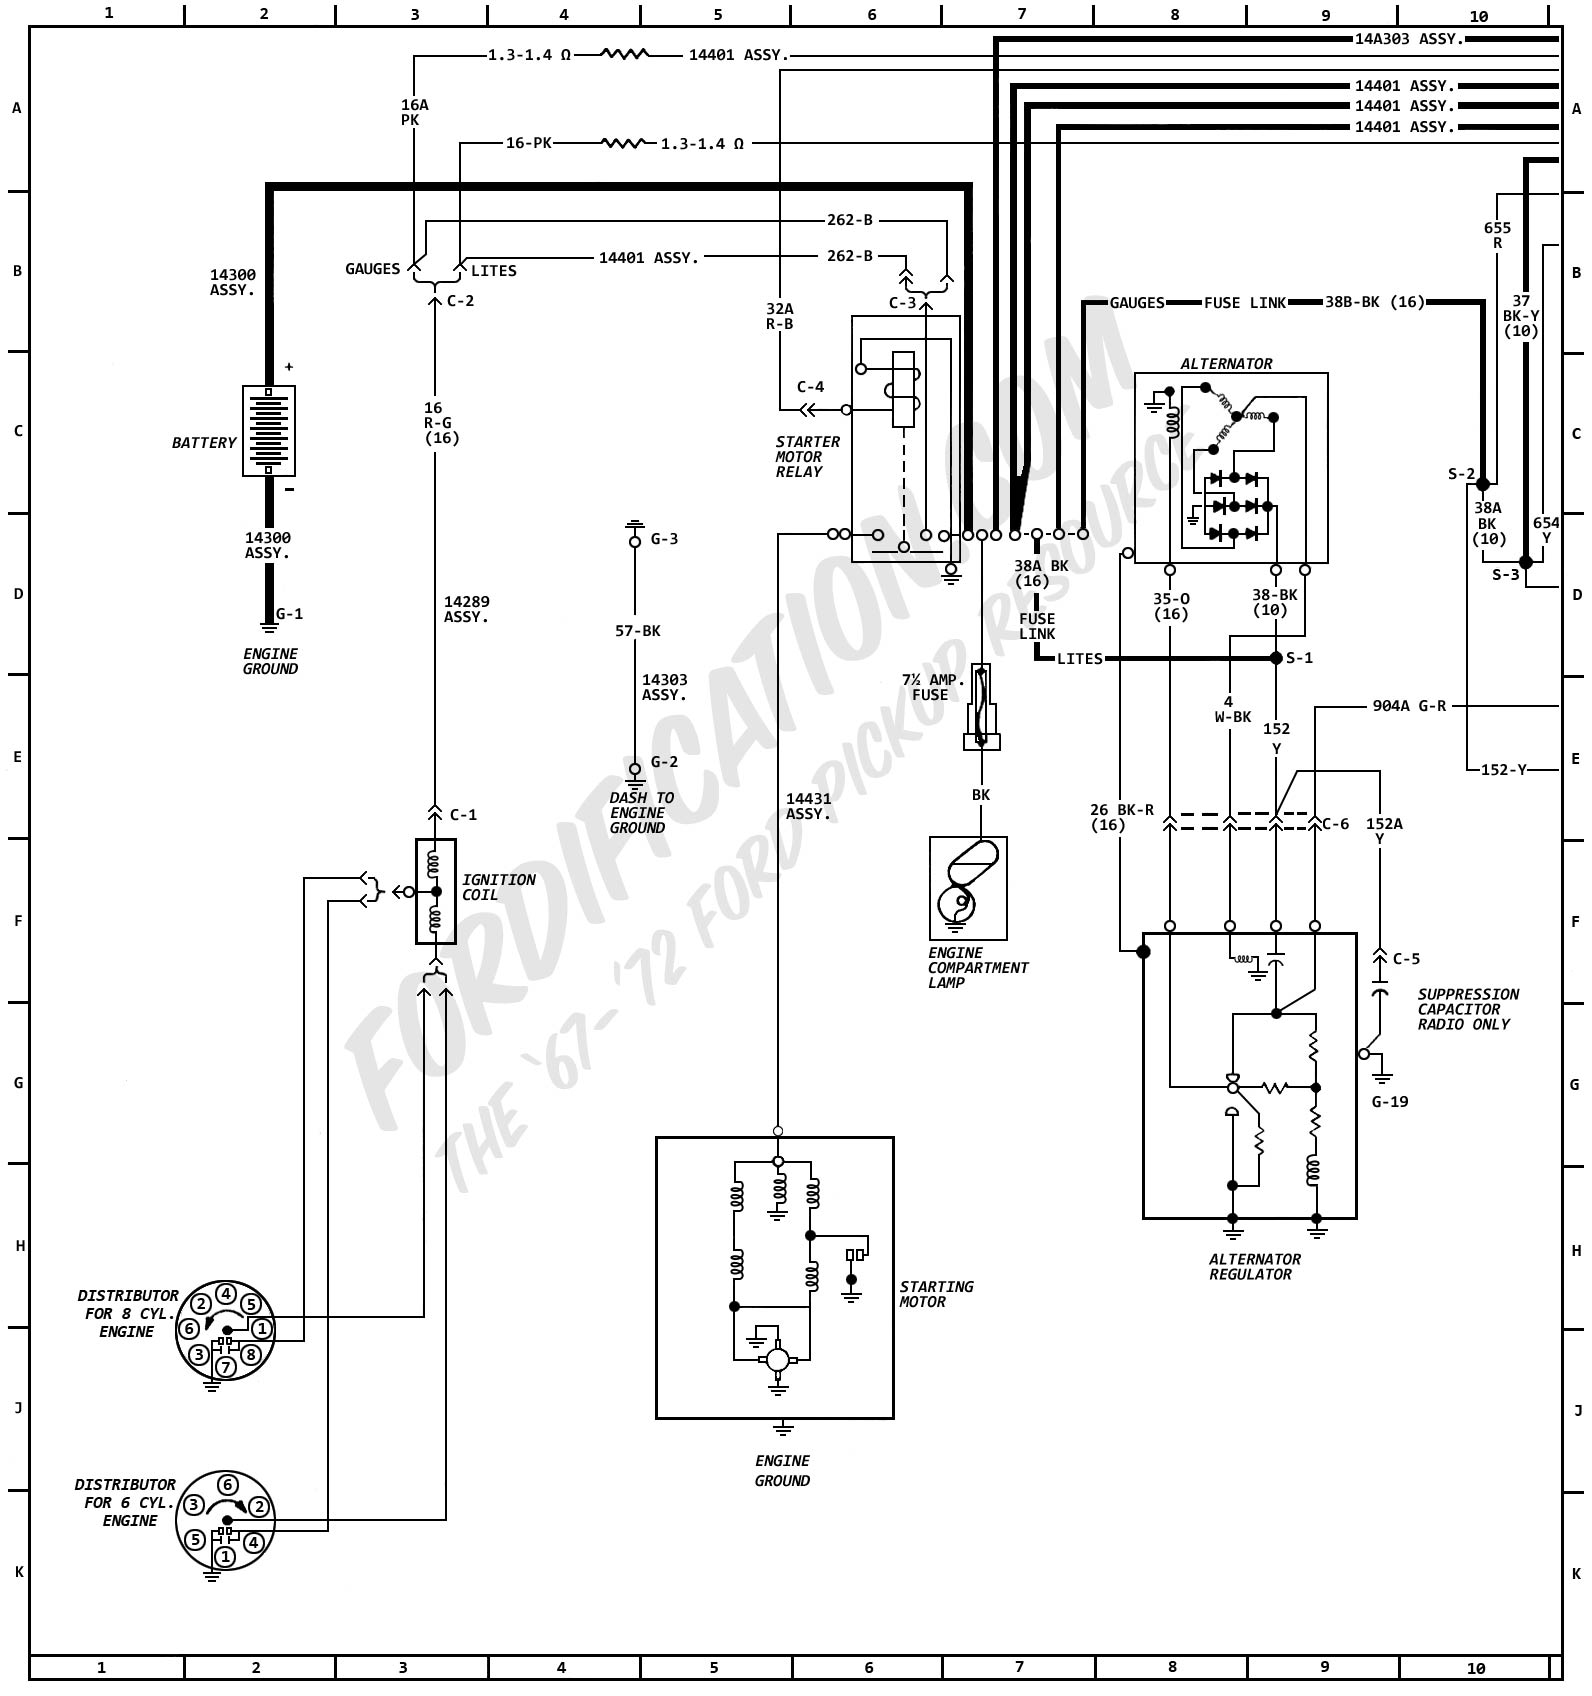 1972MasterWiring_01 1972 ford truck wiring diagrams fordification com ford truck wiring diagrams free at webbmarketing.co